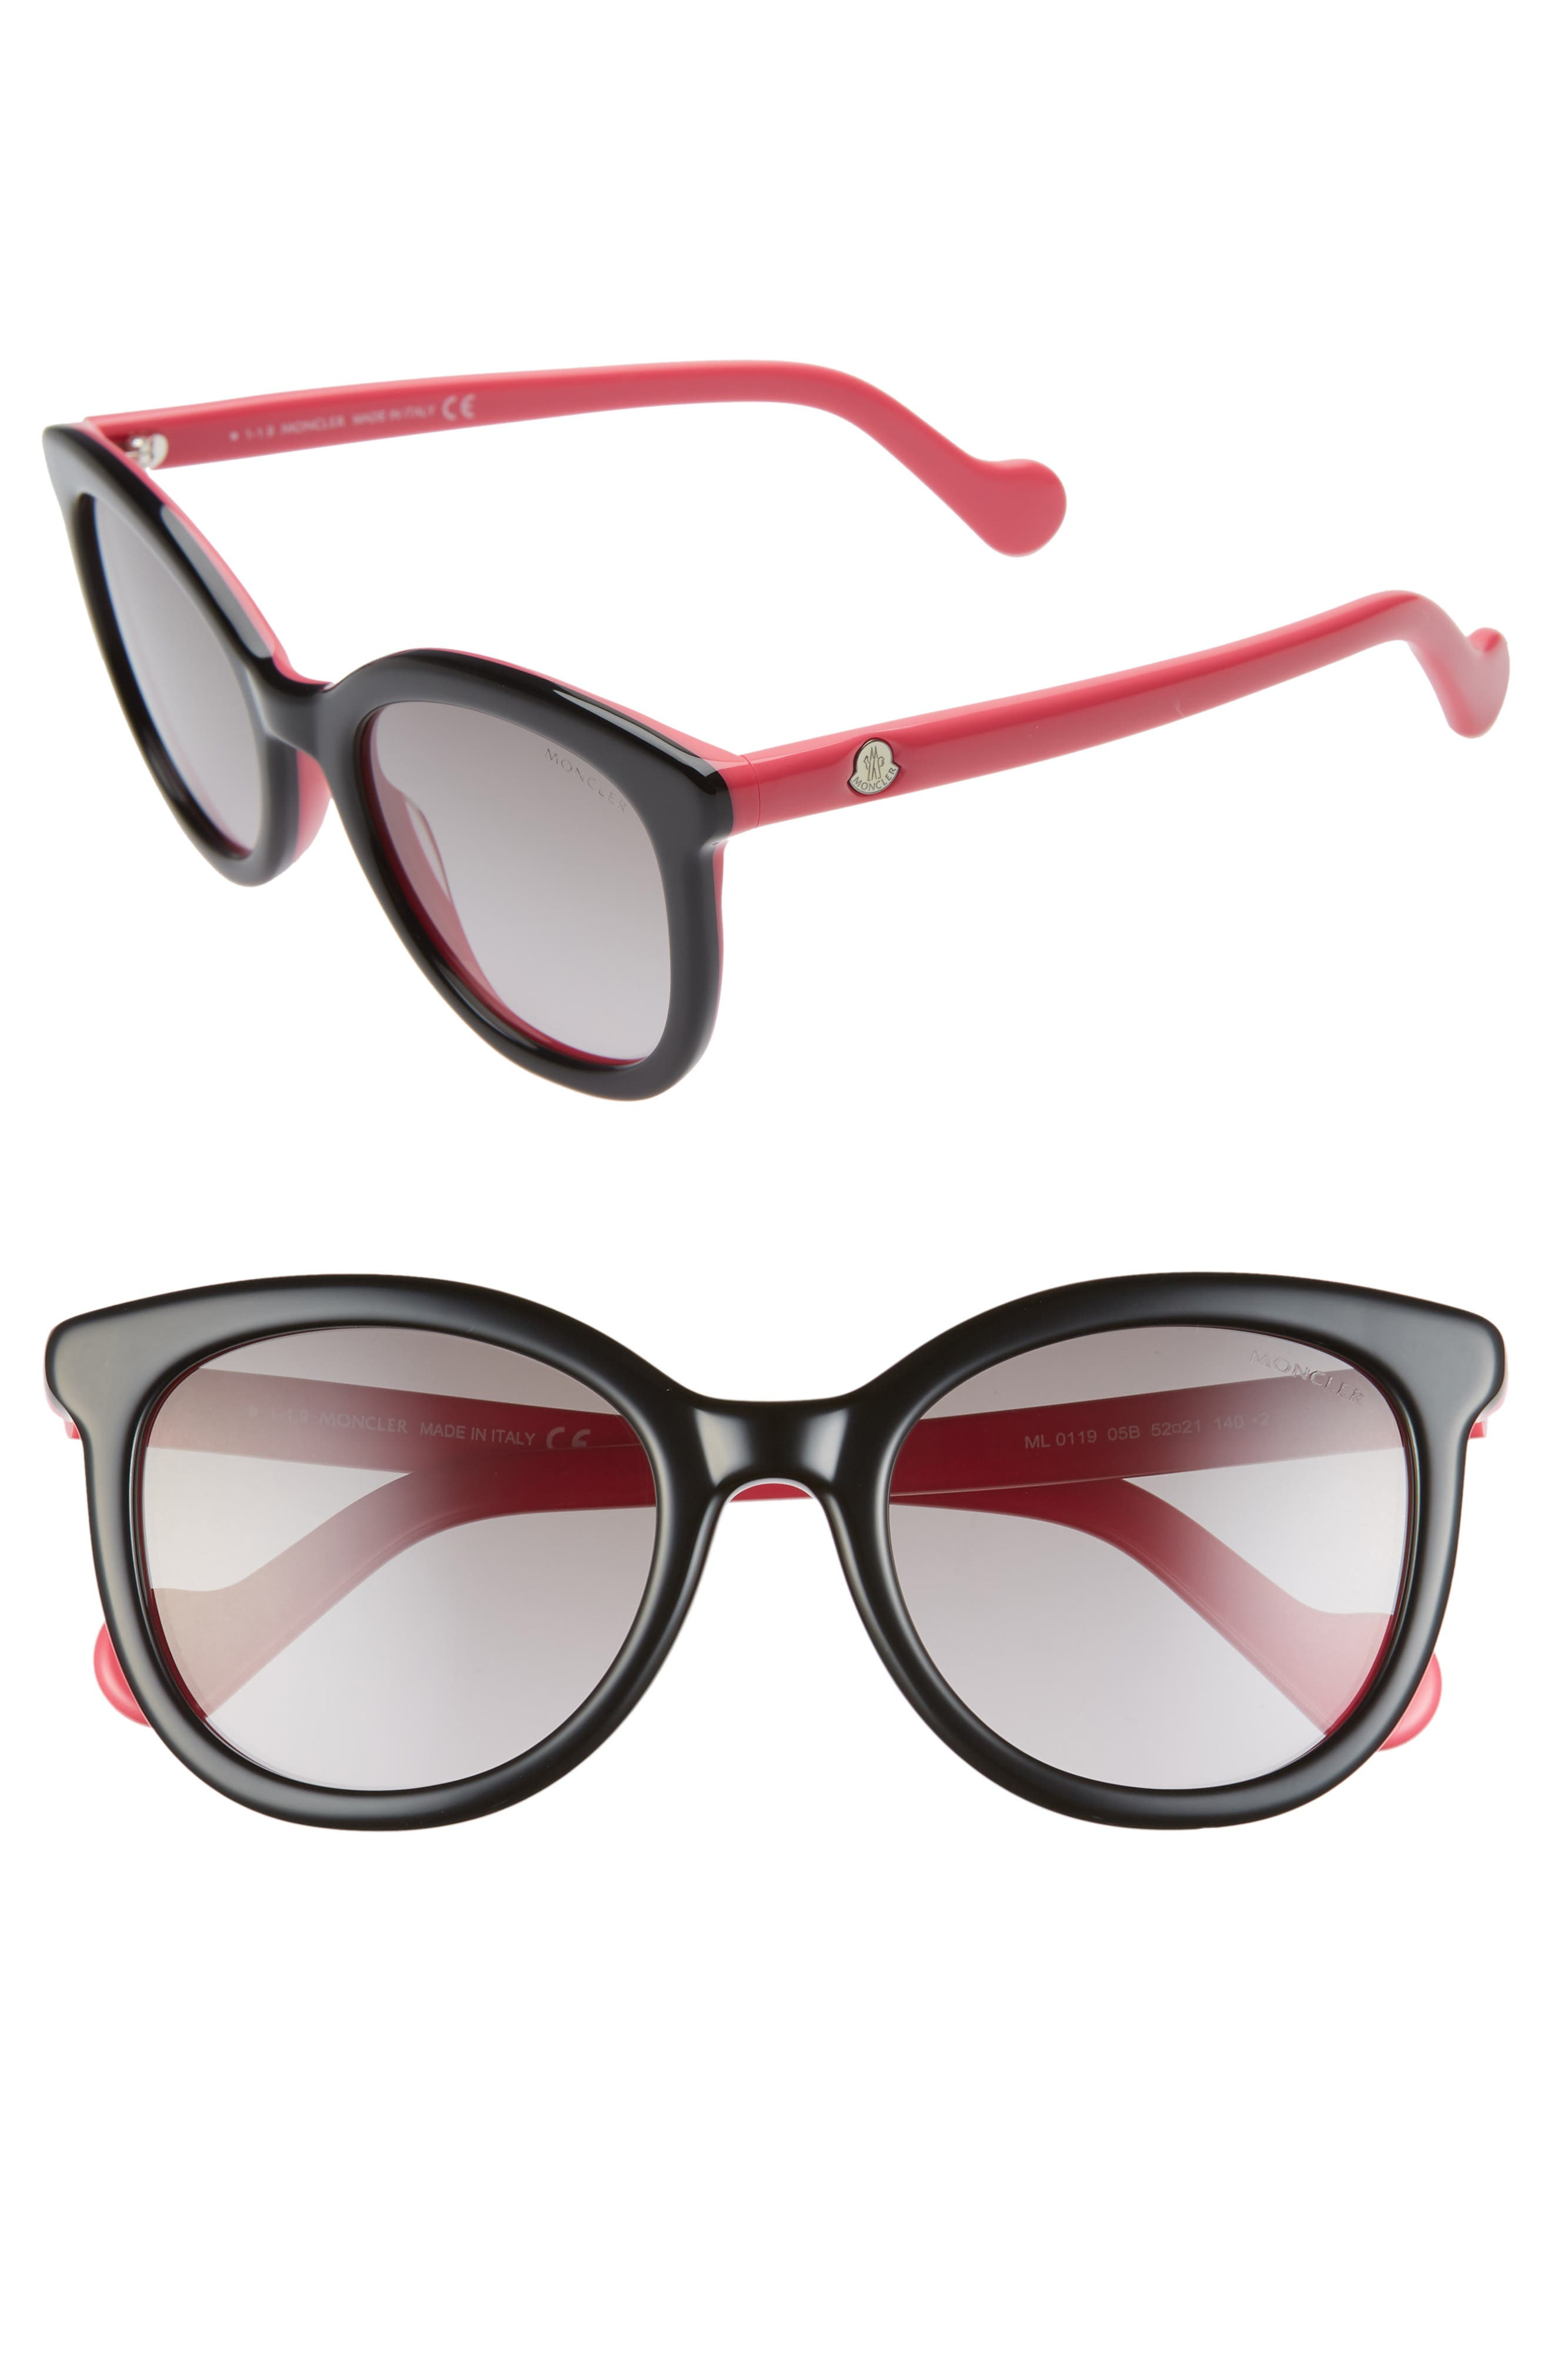 Rounded lenses with flared frames add a hint of mod, cat-eye-inspired attitude to Italian-crafted shades featuring logo-detailed temples. Style Name: Moncler 52mm Sunglasses. Style Number: 5941209. Available in stores.